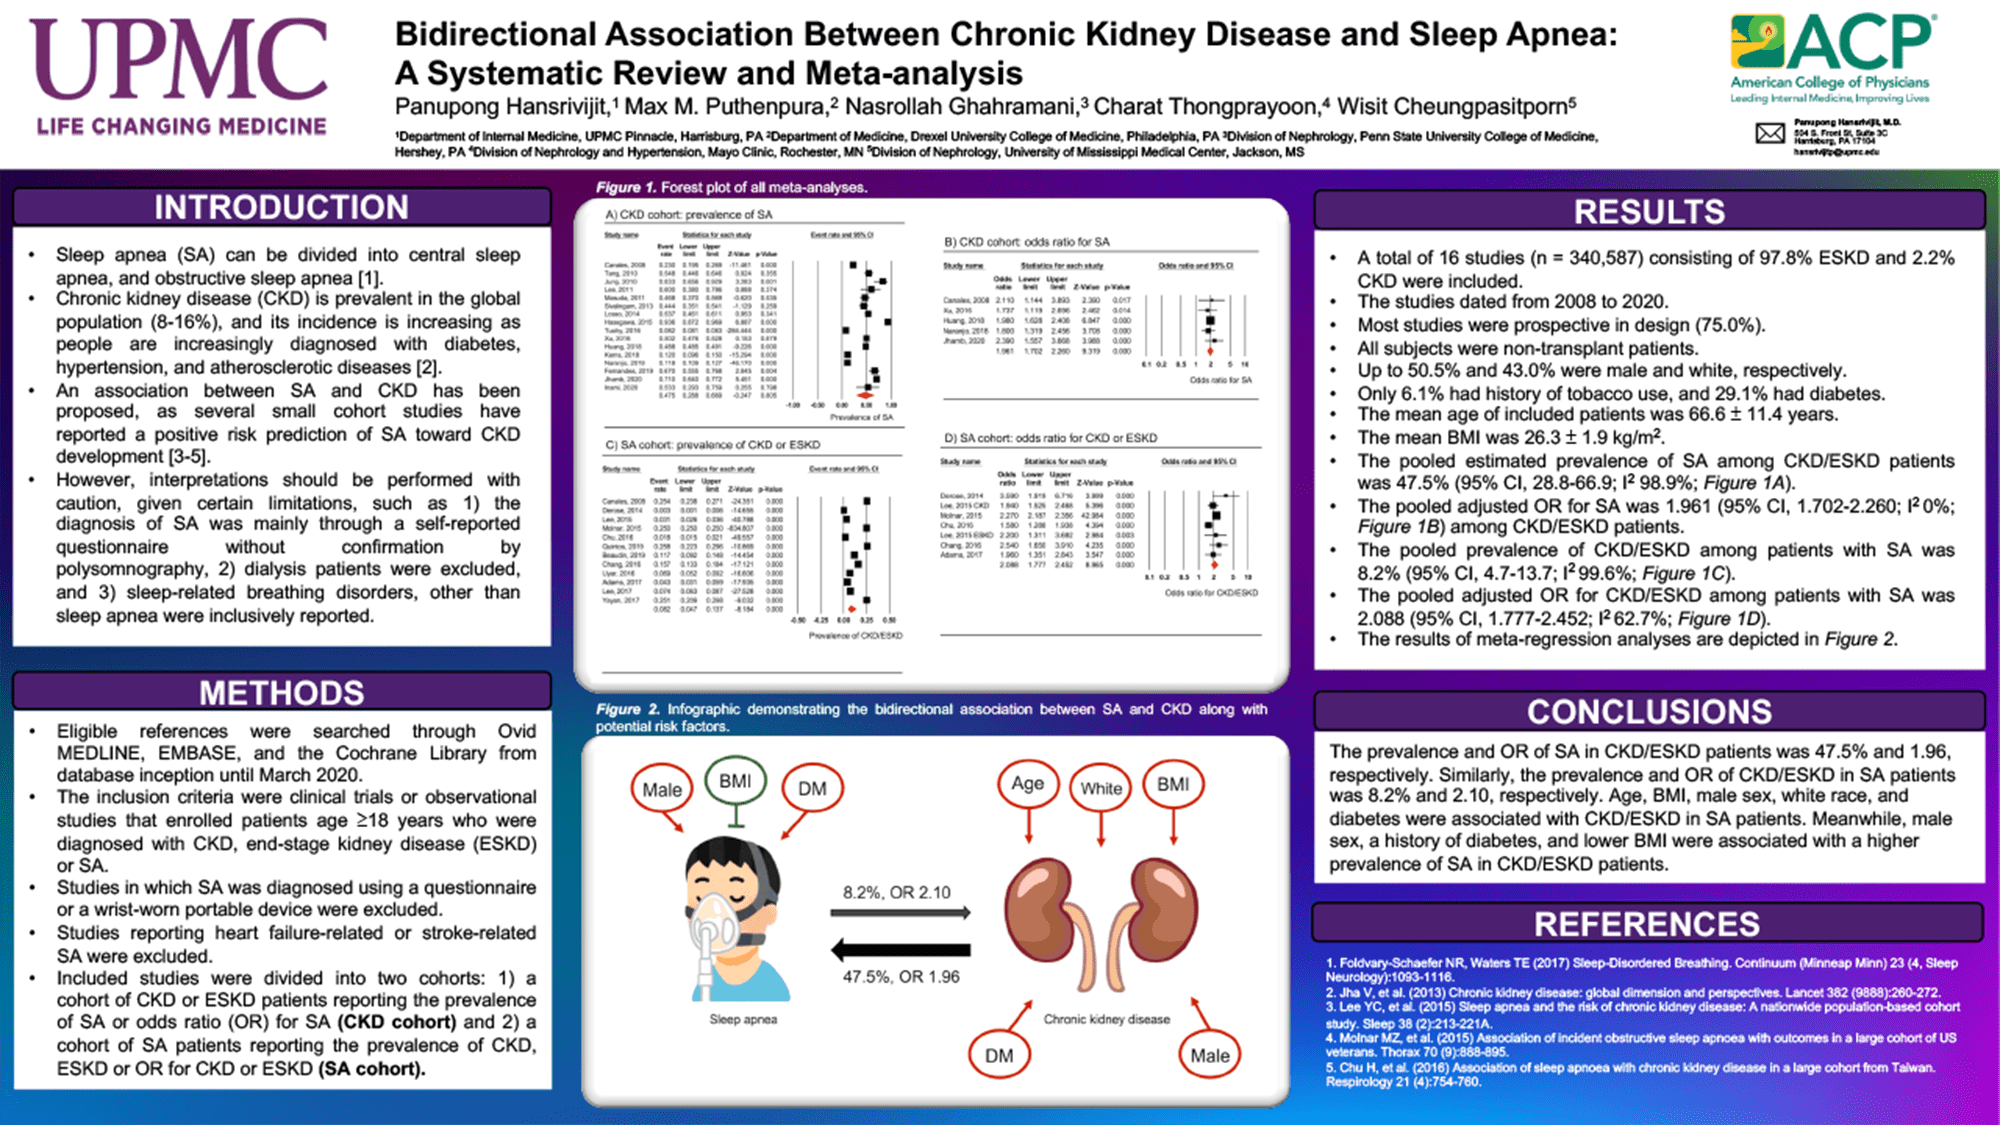 Panupong Hansrivijit - PA Eastern-173-Bidirectional-Association-Between-Chronic-Kidney-Disease-and-Sleep-Apnea-Meta-analysis